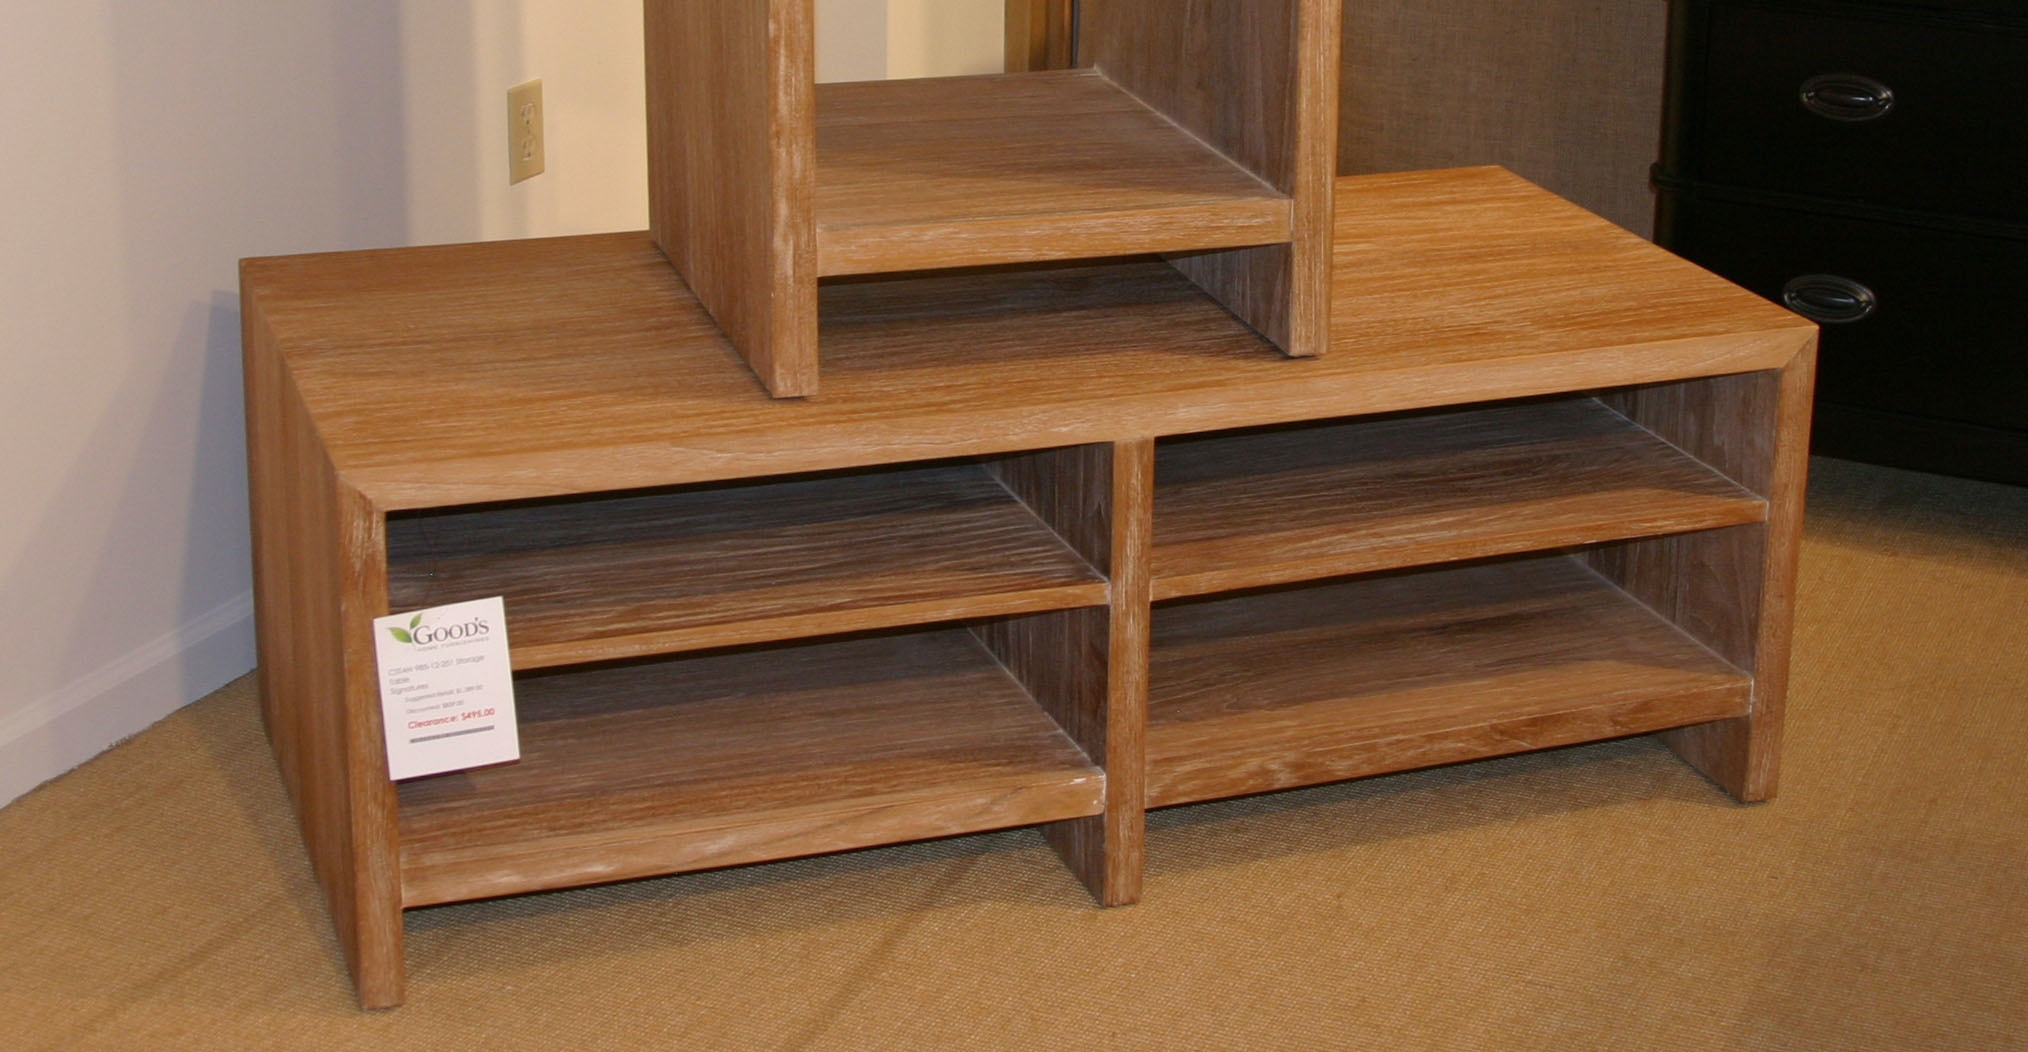 Stanley Bookcases Goods Home Furnishings